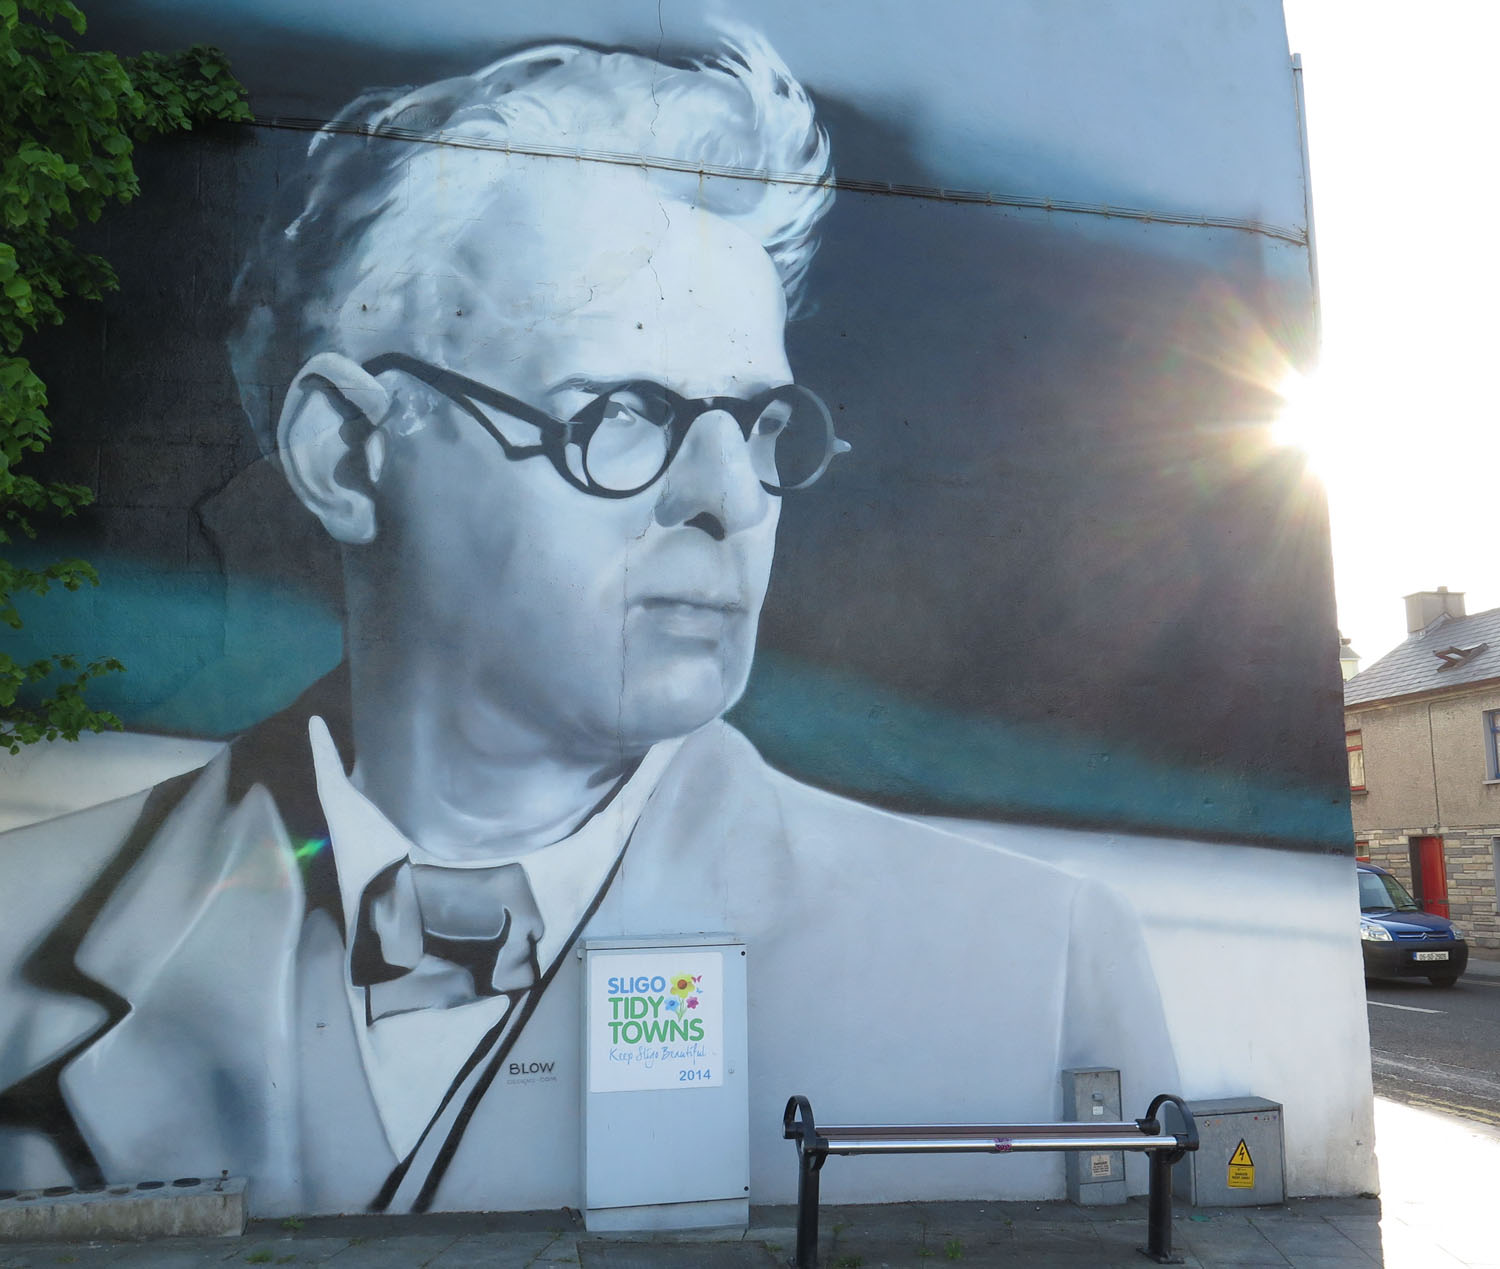 Ireland-Sights-And-Scenery-Sligo-Yeats-Mural